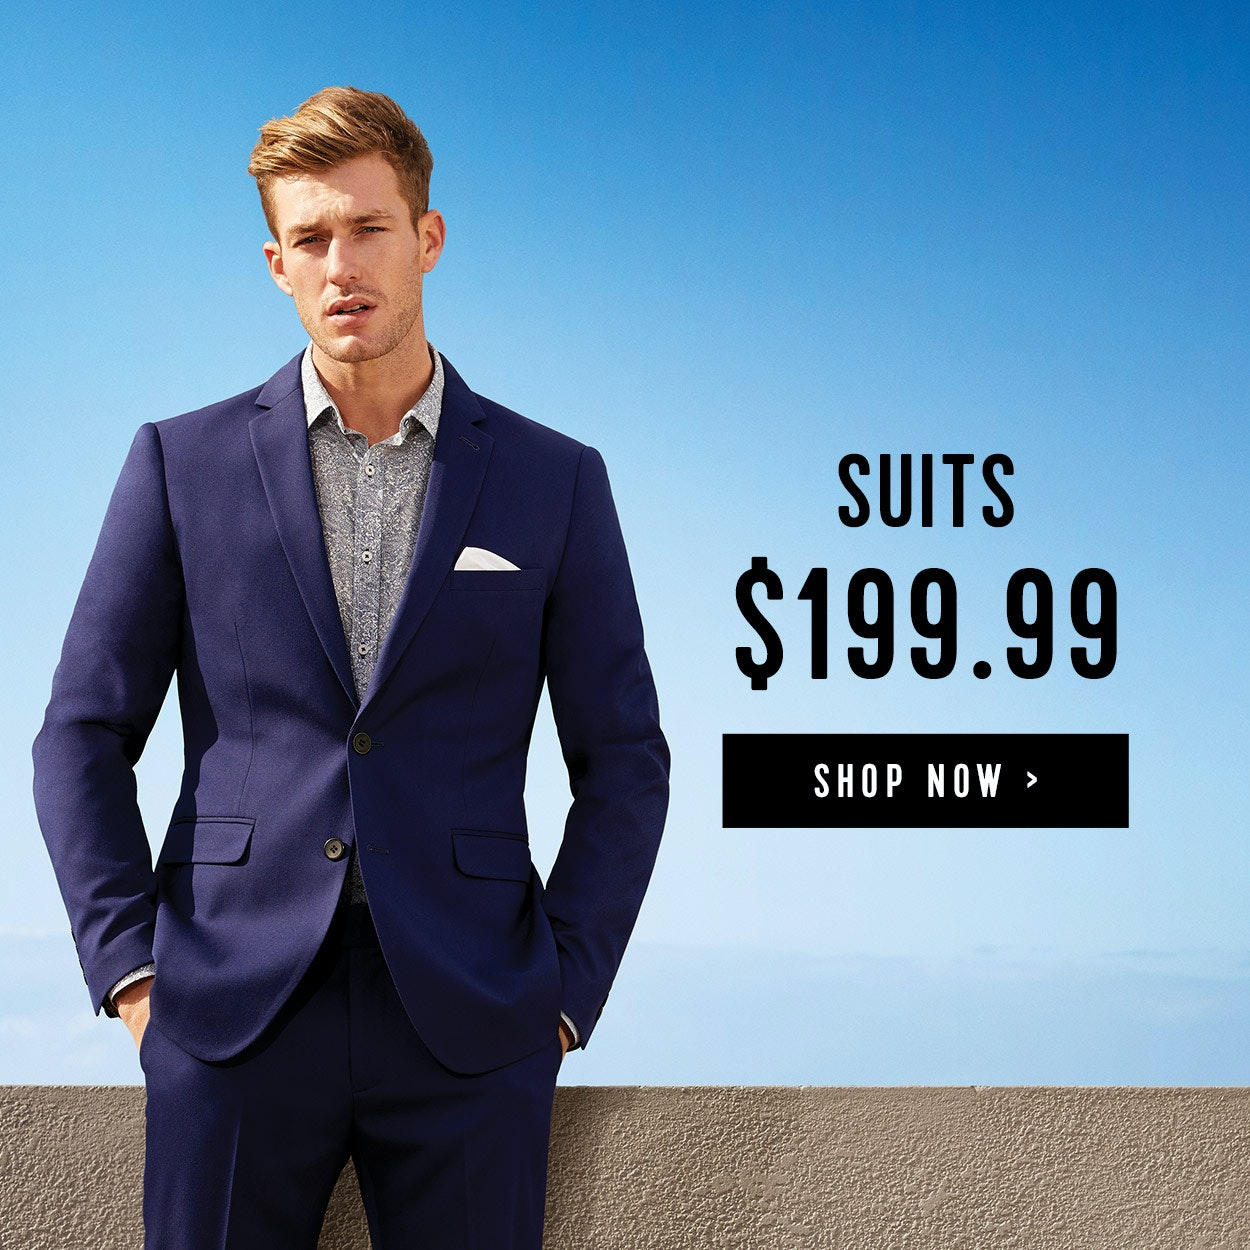 Full Suit for $199.99